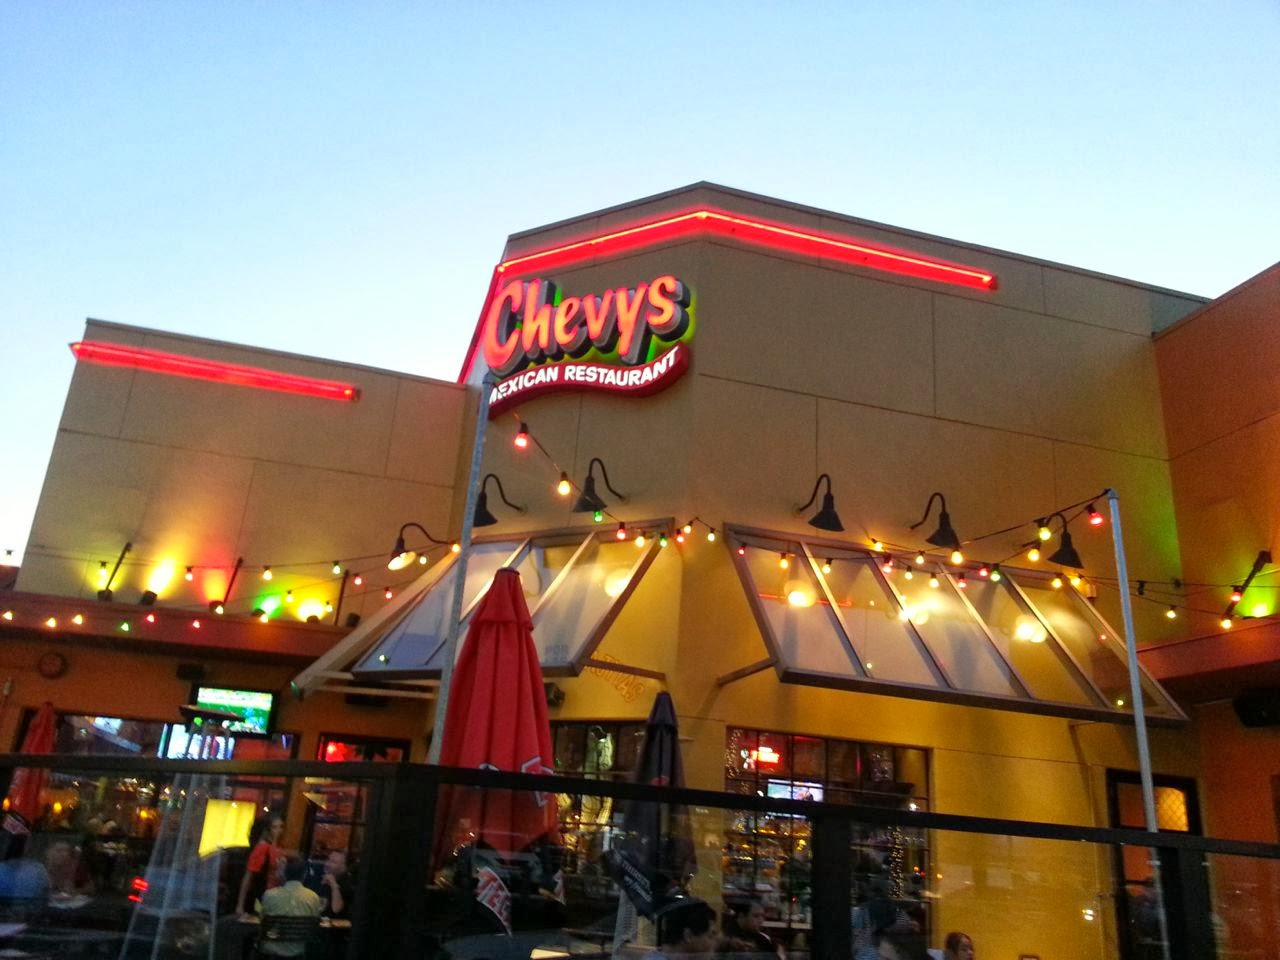 Chevys prepares dishes daily from scratch using only the freshest ingredients and its menu includes traditional enchiladas, burritos and tacos, as well as mesquite-broiled skirt steak, fresh fish .